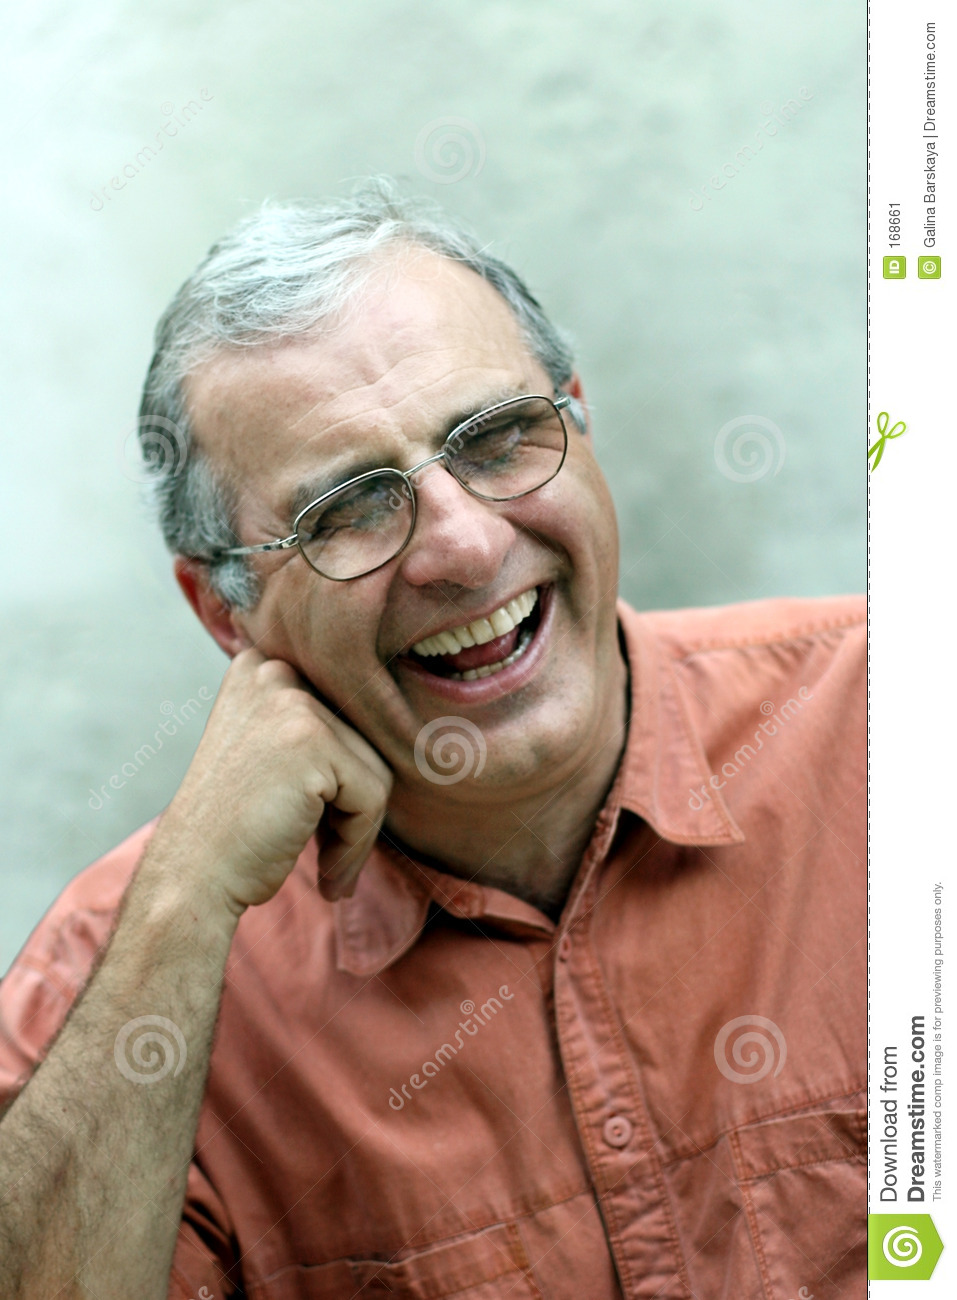 Mature man laughing